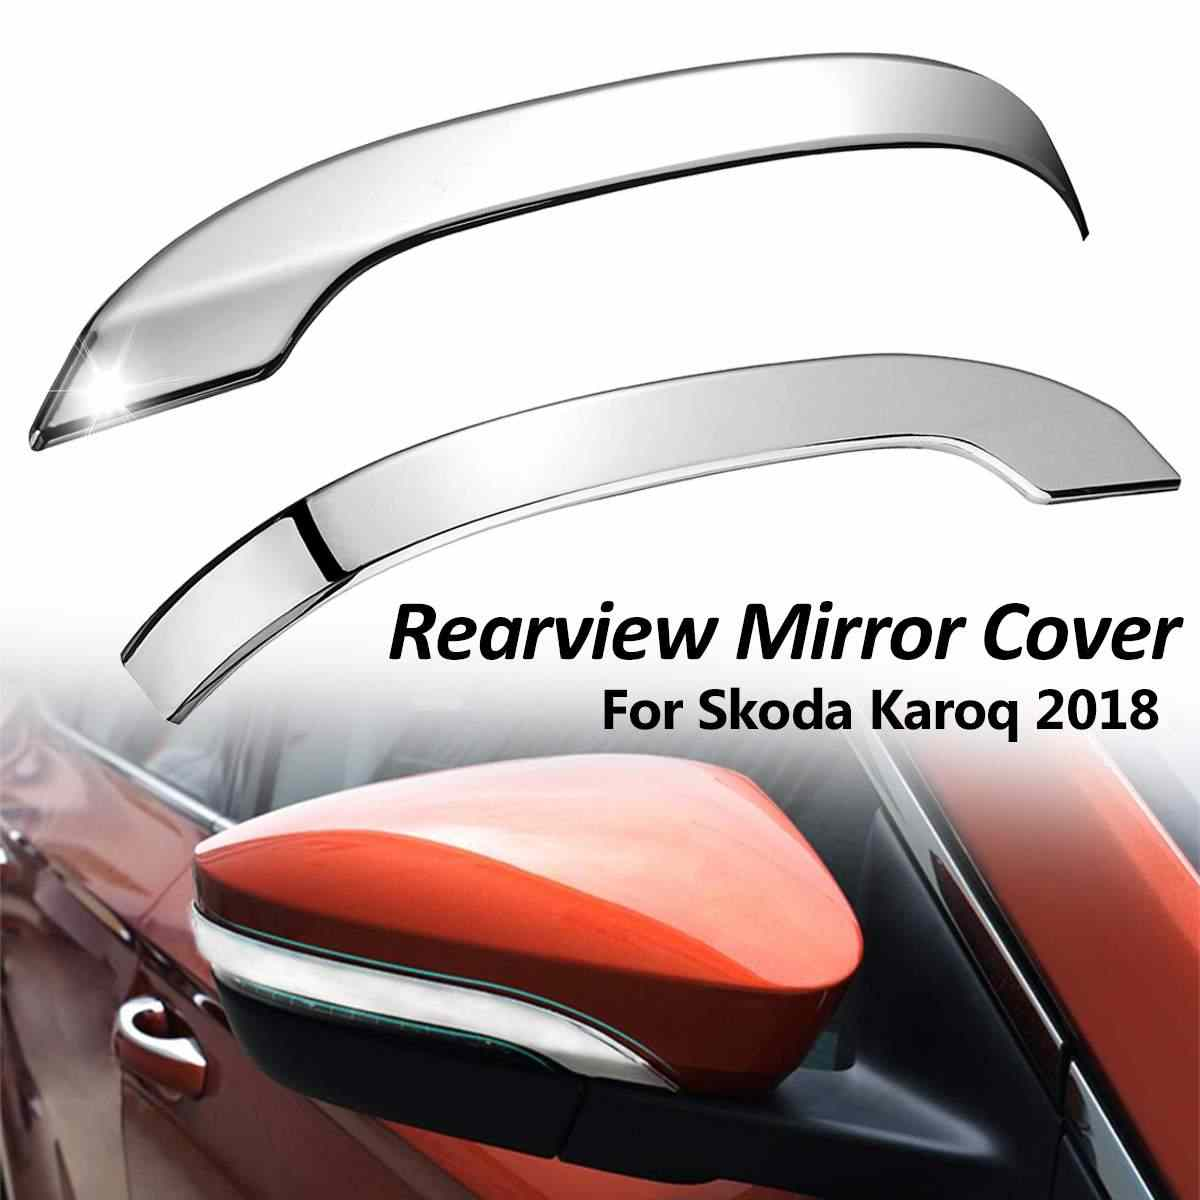 2Pcs Car Styling ABS Chrome Rearview Mirror Protective Cover Trim For Skoda Karoq 2018 Mirror Sticker Accessories